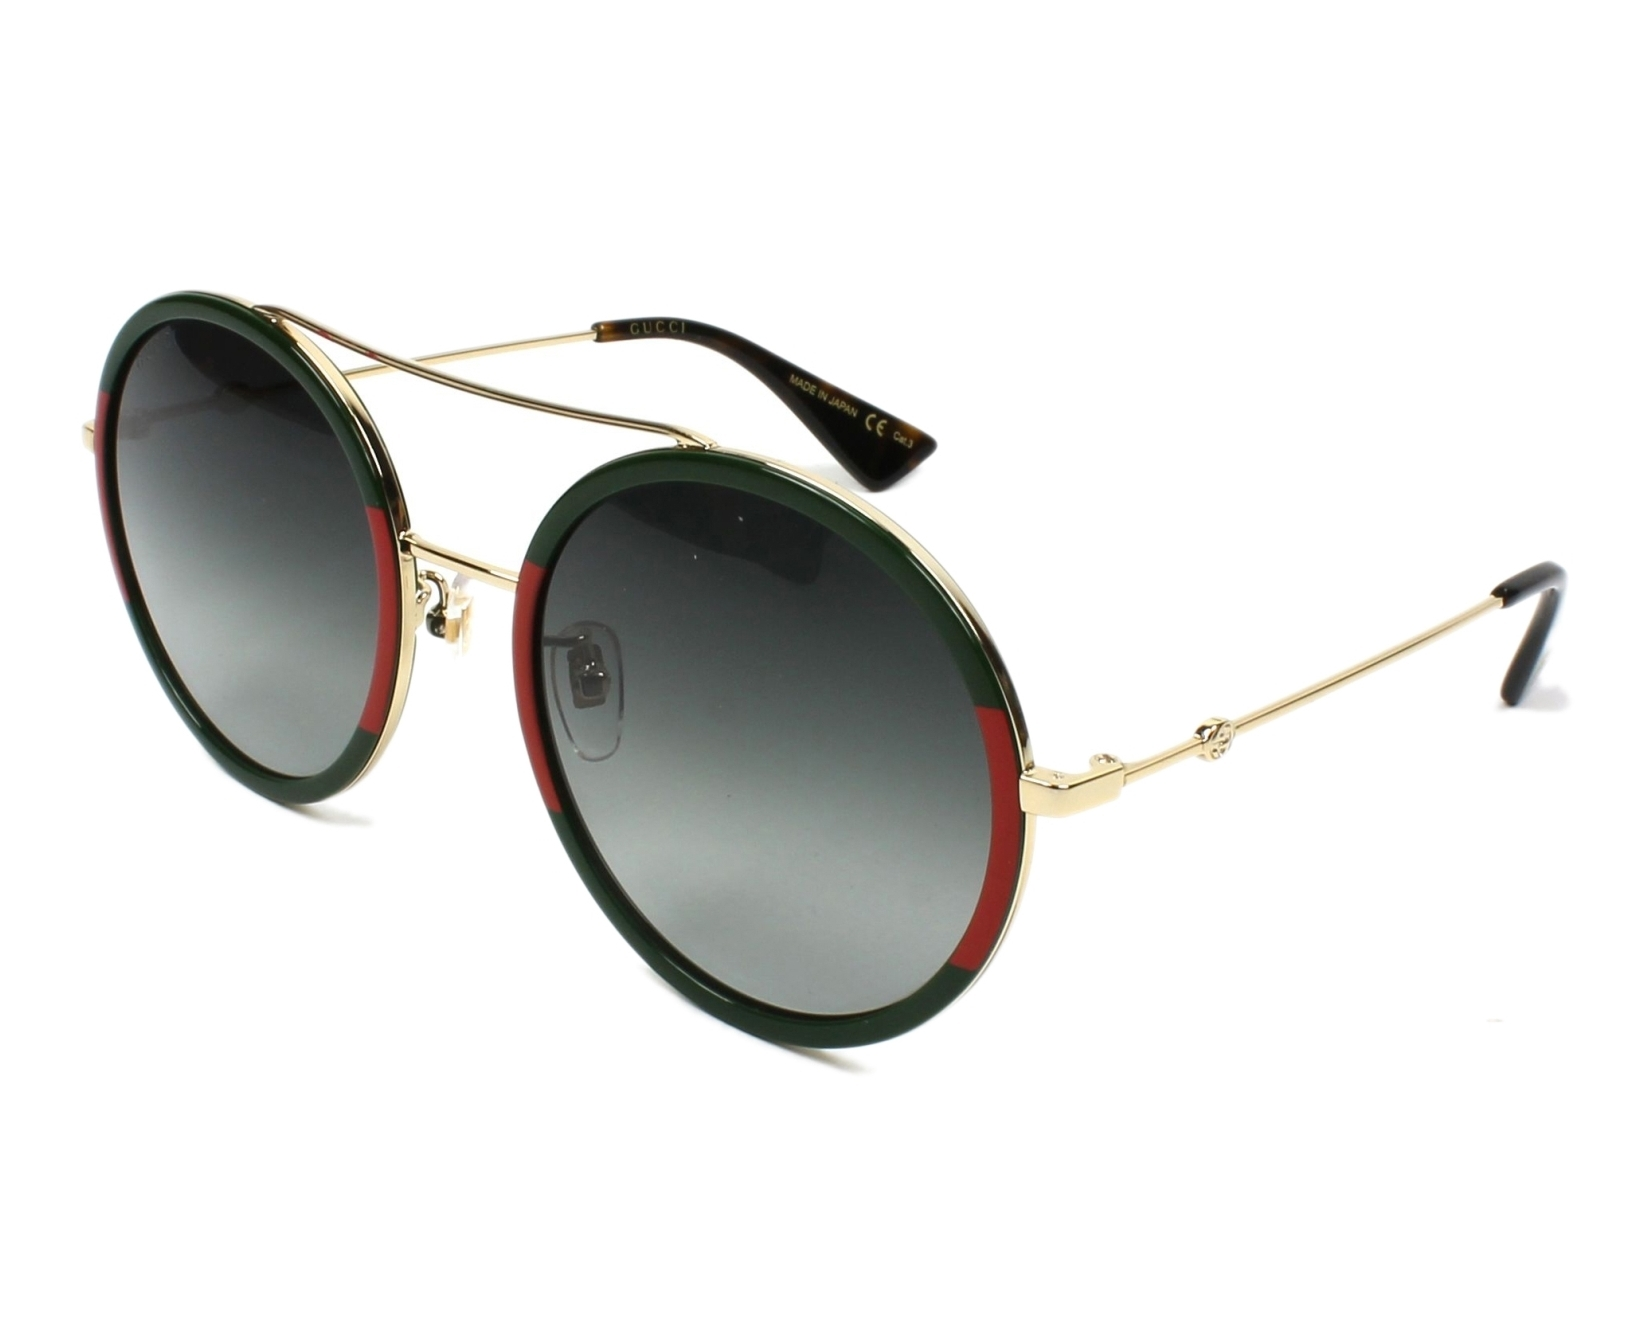 Gucci Sunglasses Gg 0061 S 003 Buy Now And Save 4 Visionet